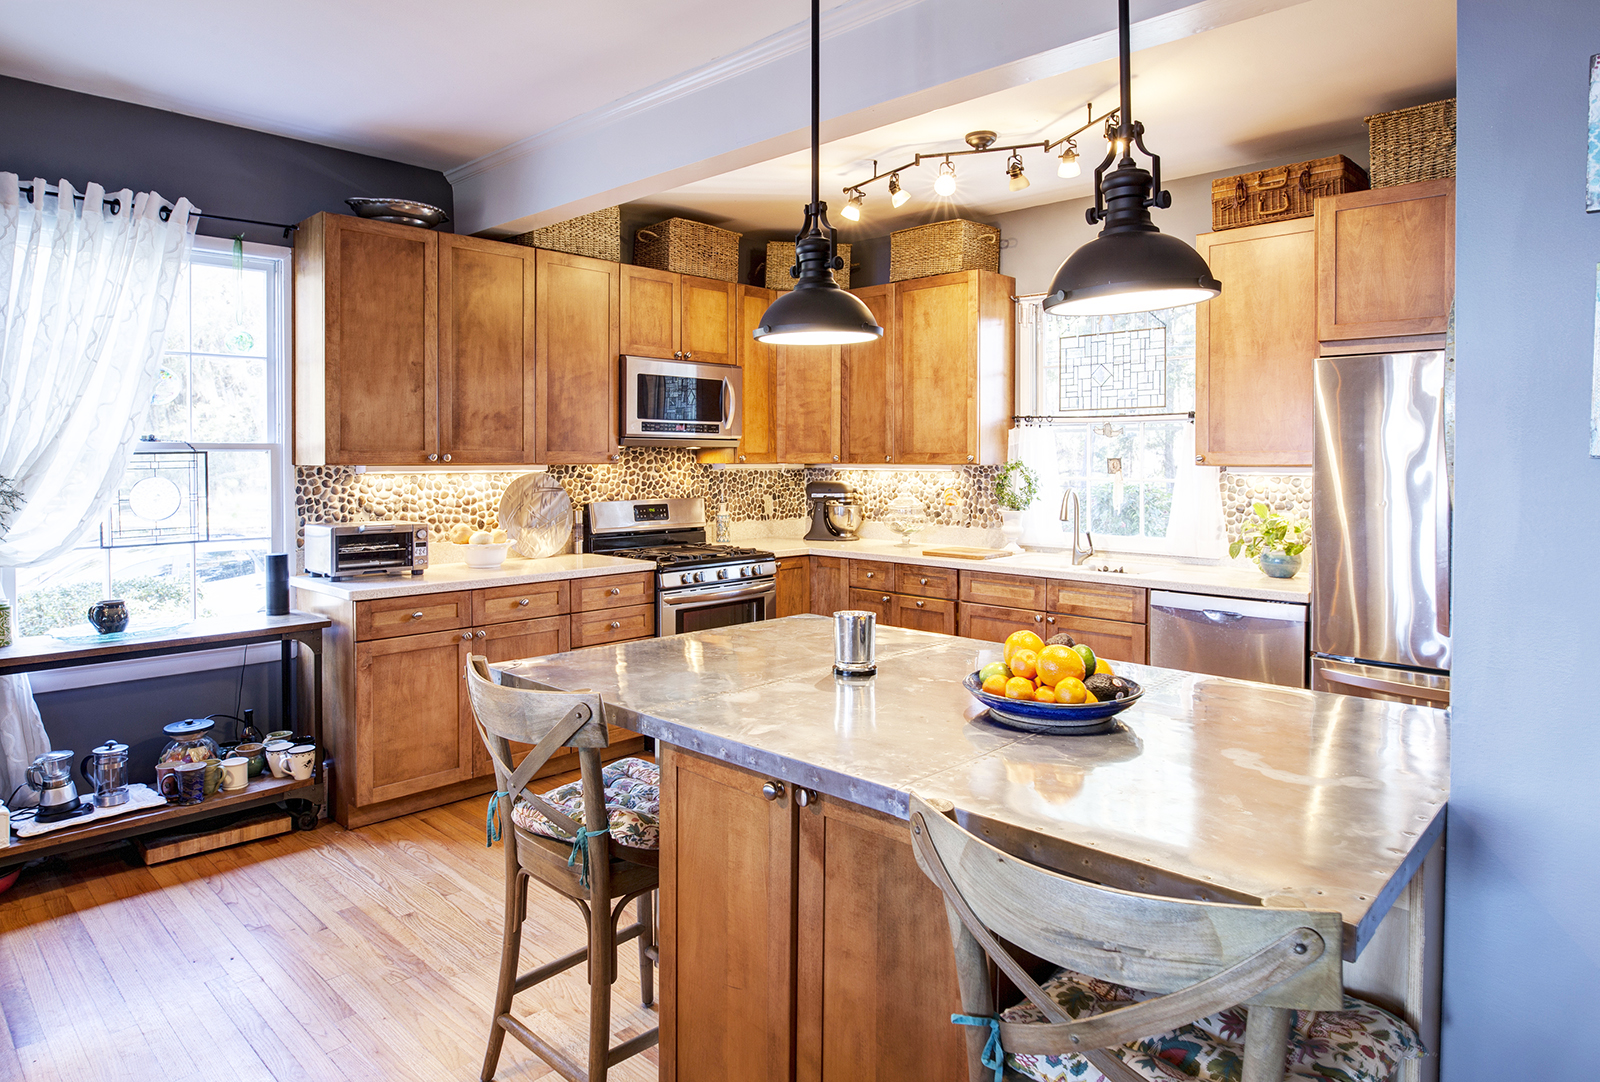 Remodeling Your Kitchen, Or Even Just Replacing Your Countertops, Is A  Great Investment For Your Home. Kitchen Countertops Are A Focal Point Of  The Room And ...